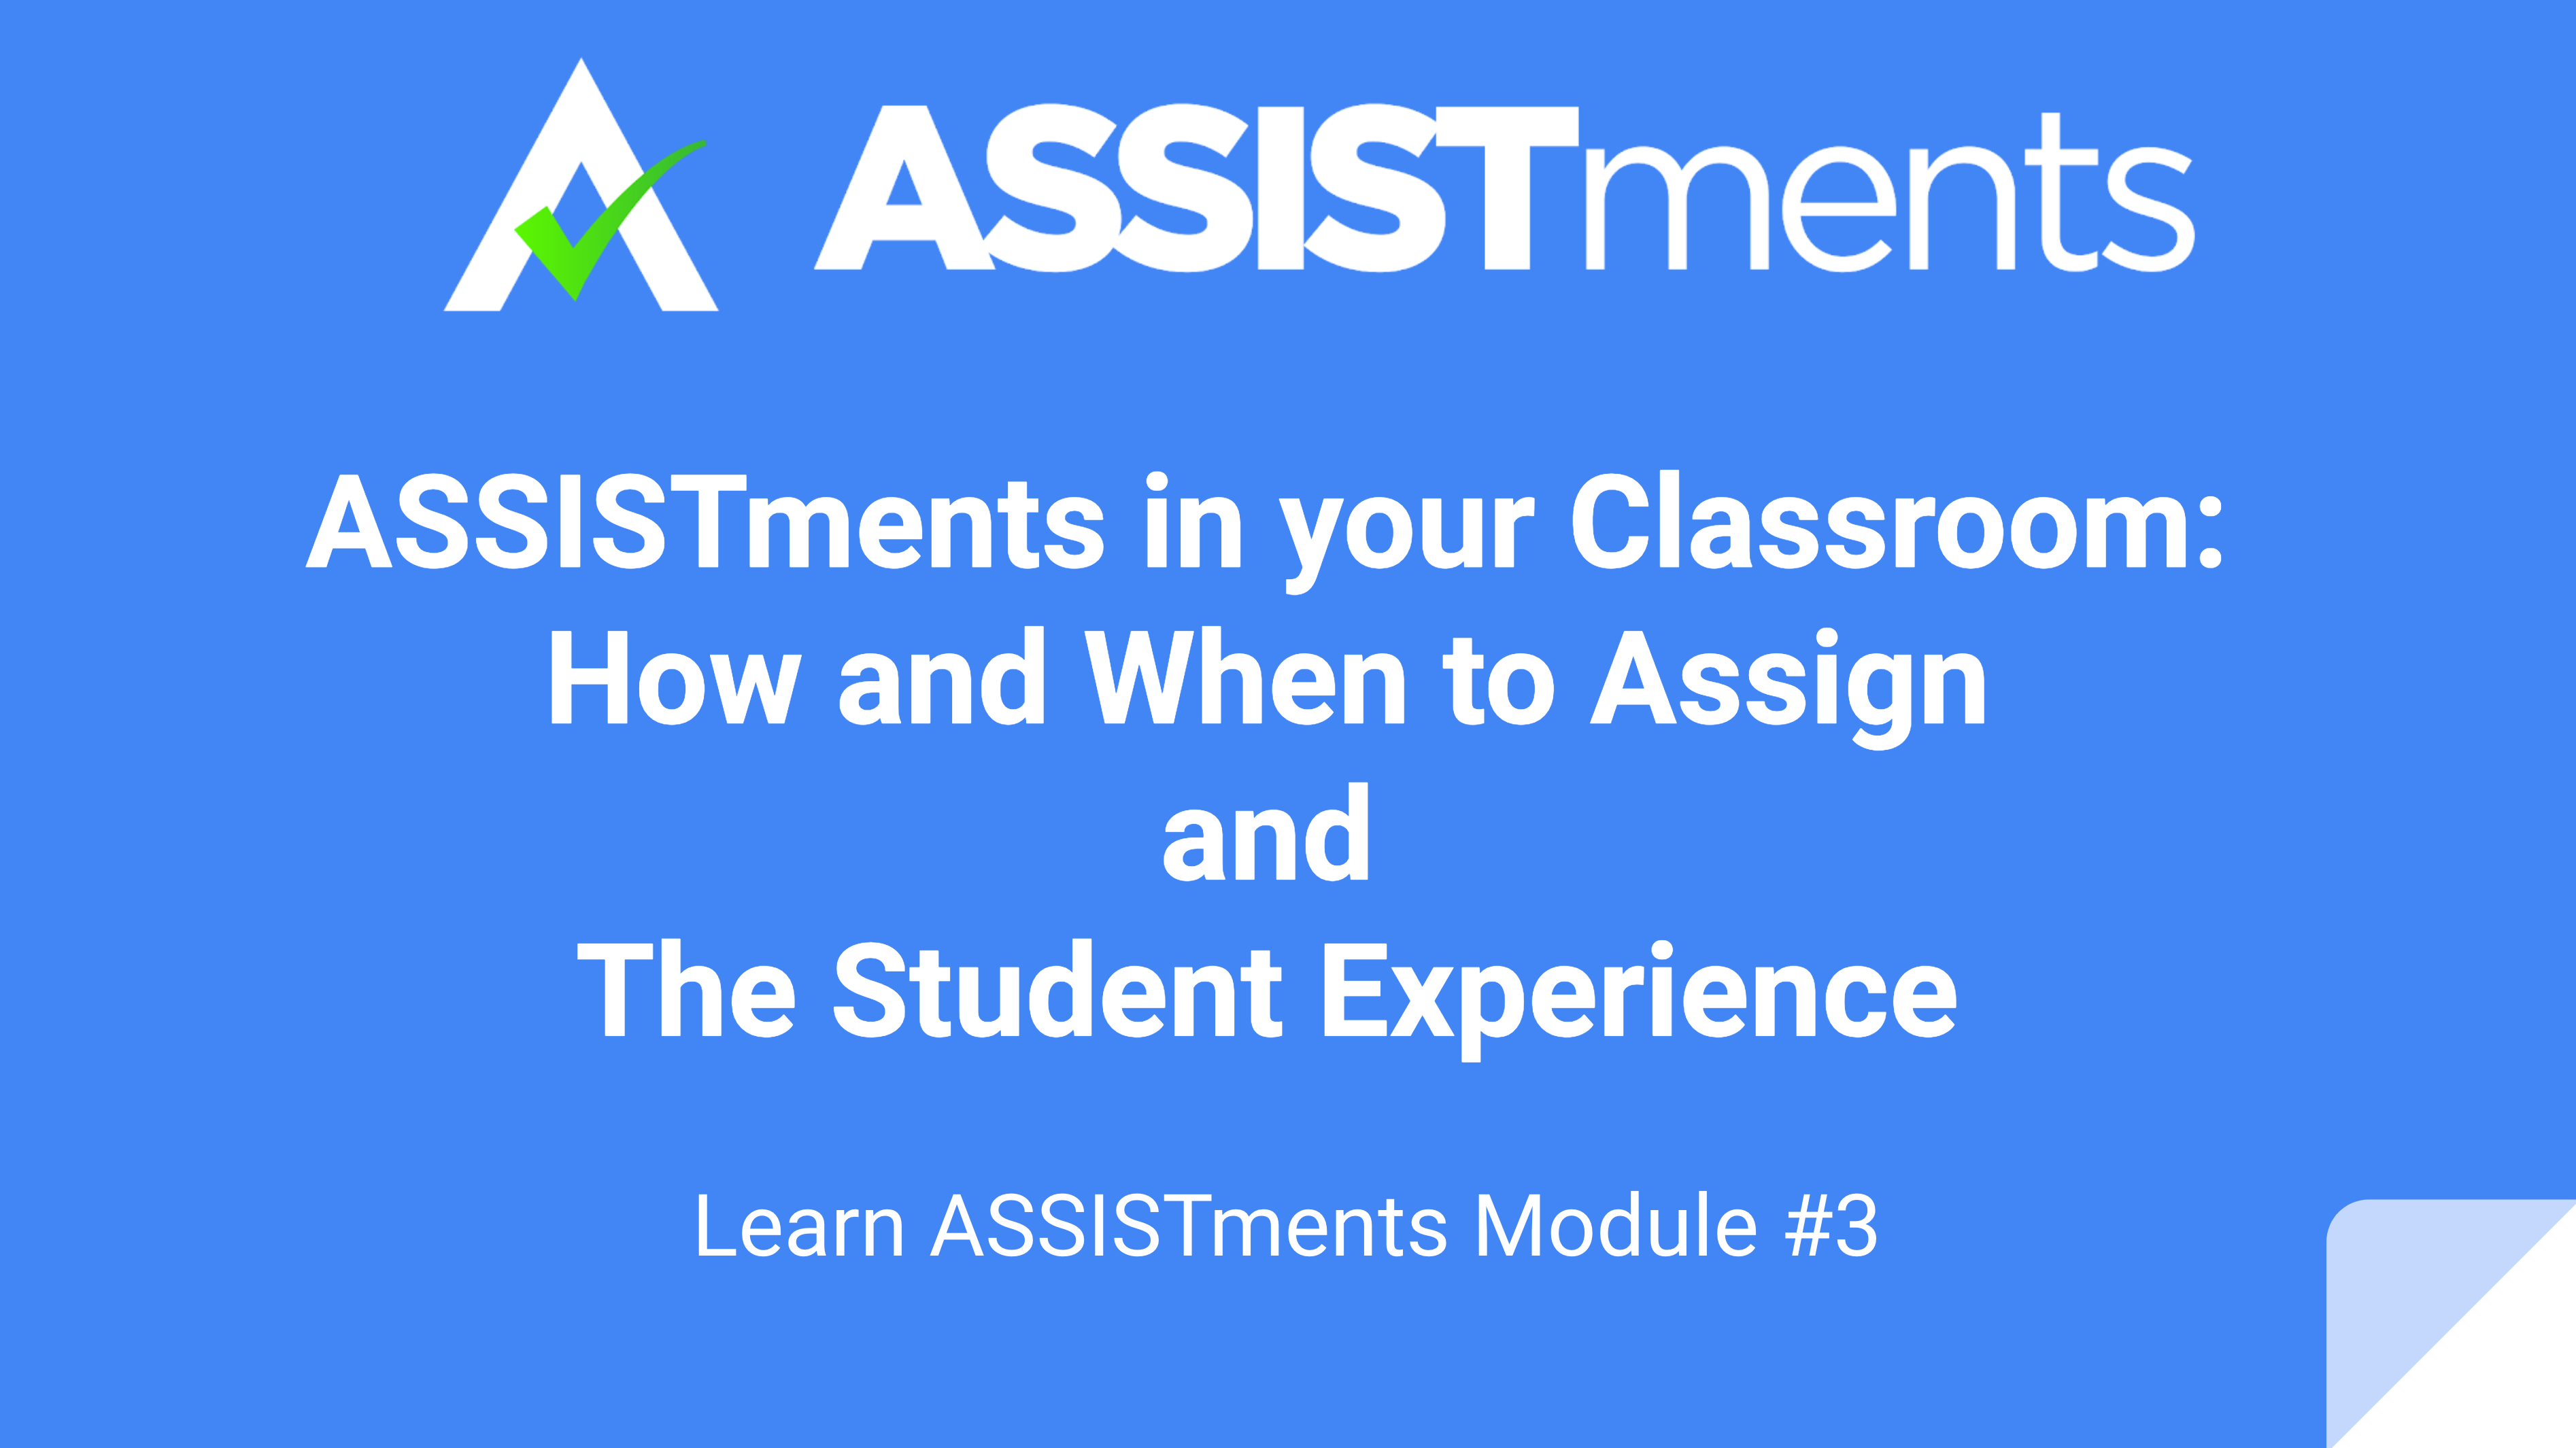 Learn ASSISTments Module #3